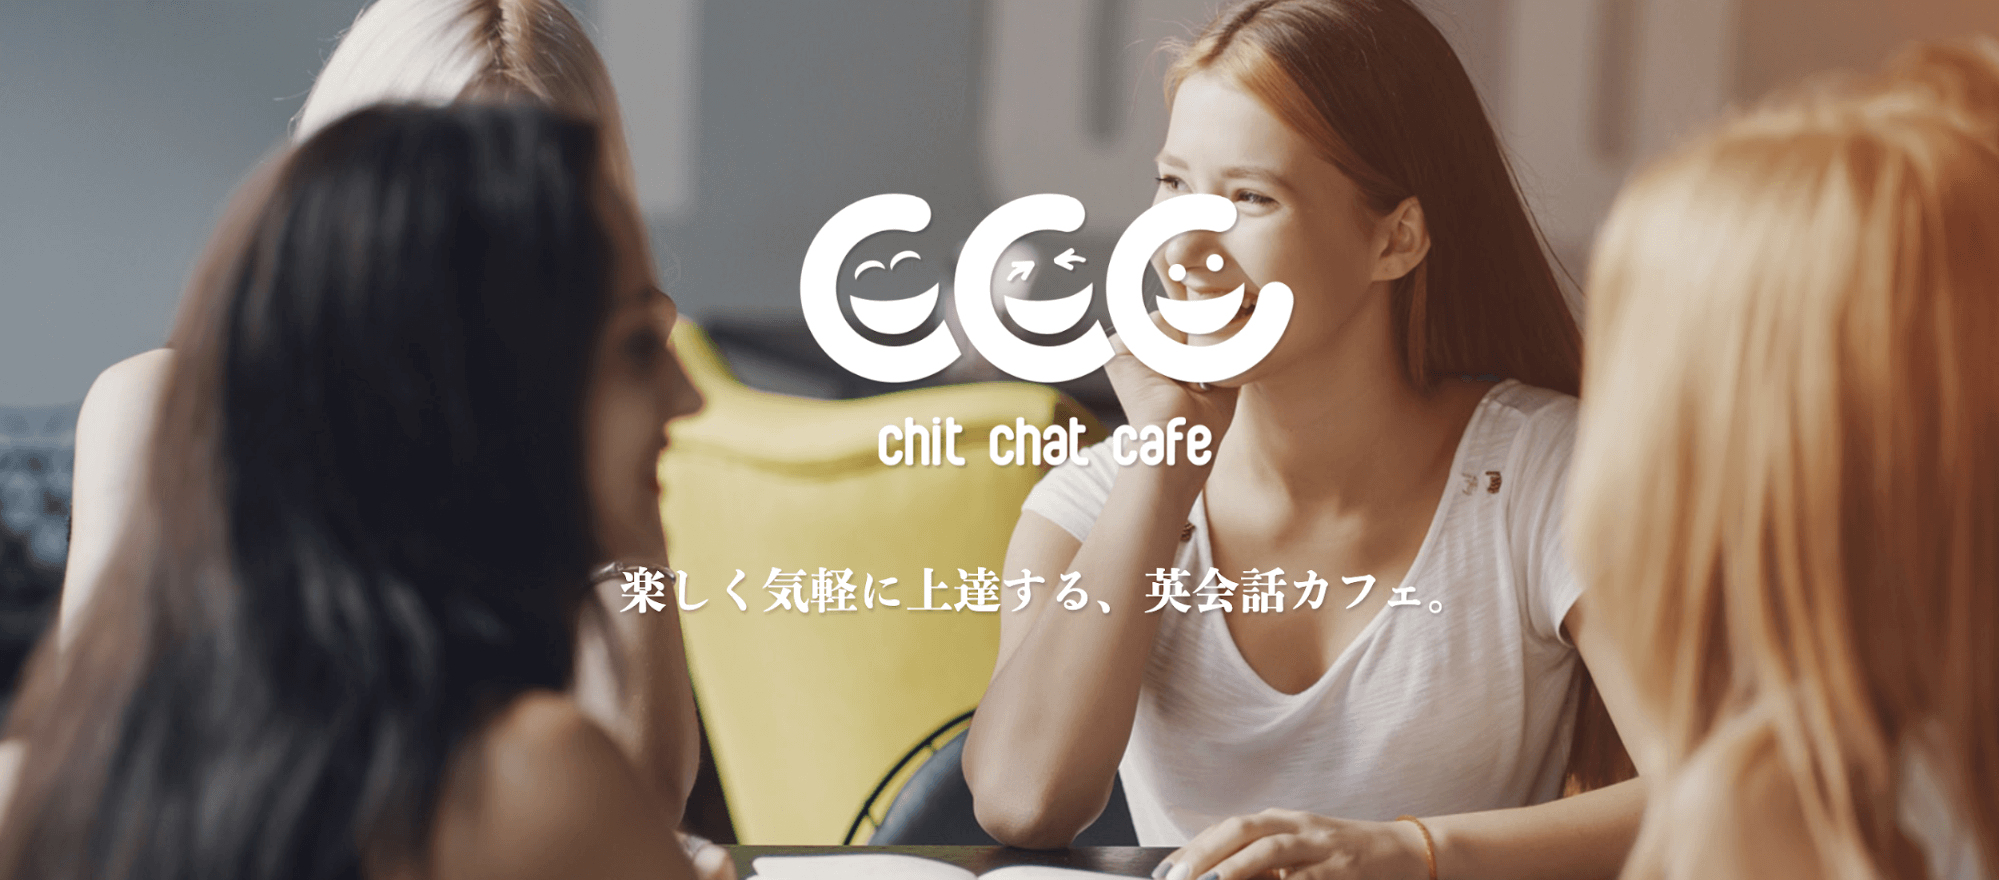 chit chat cafe